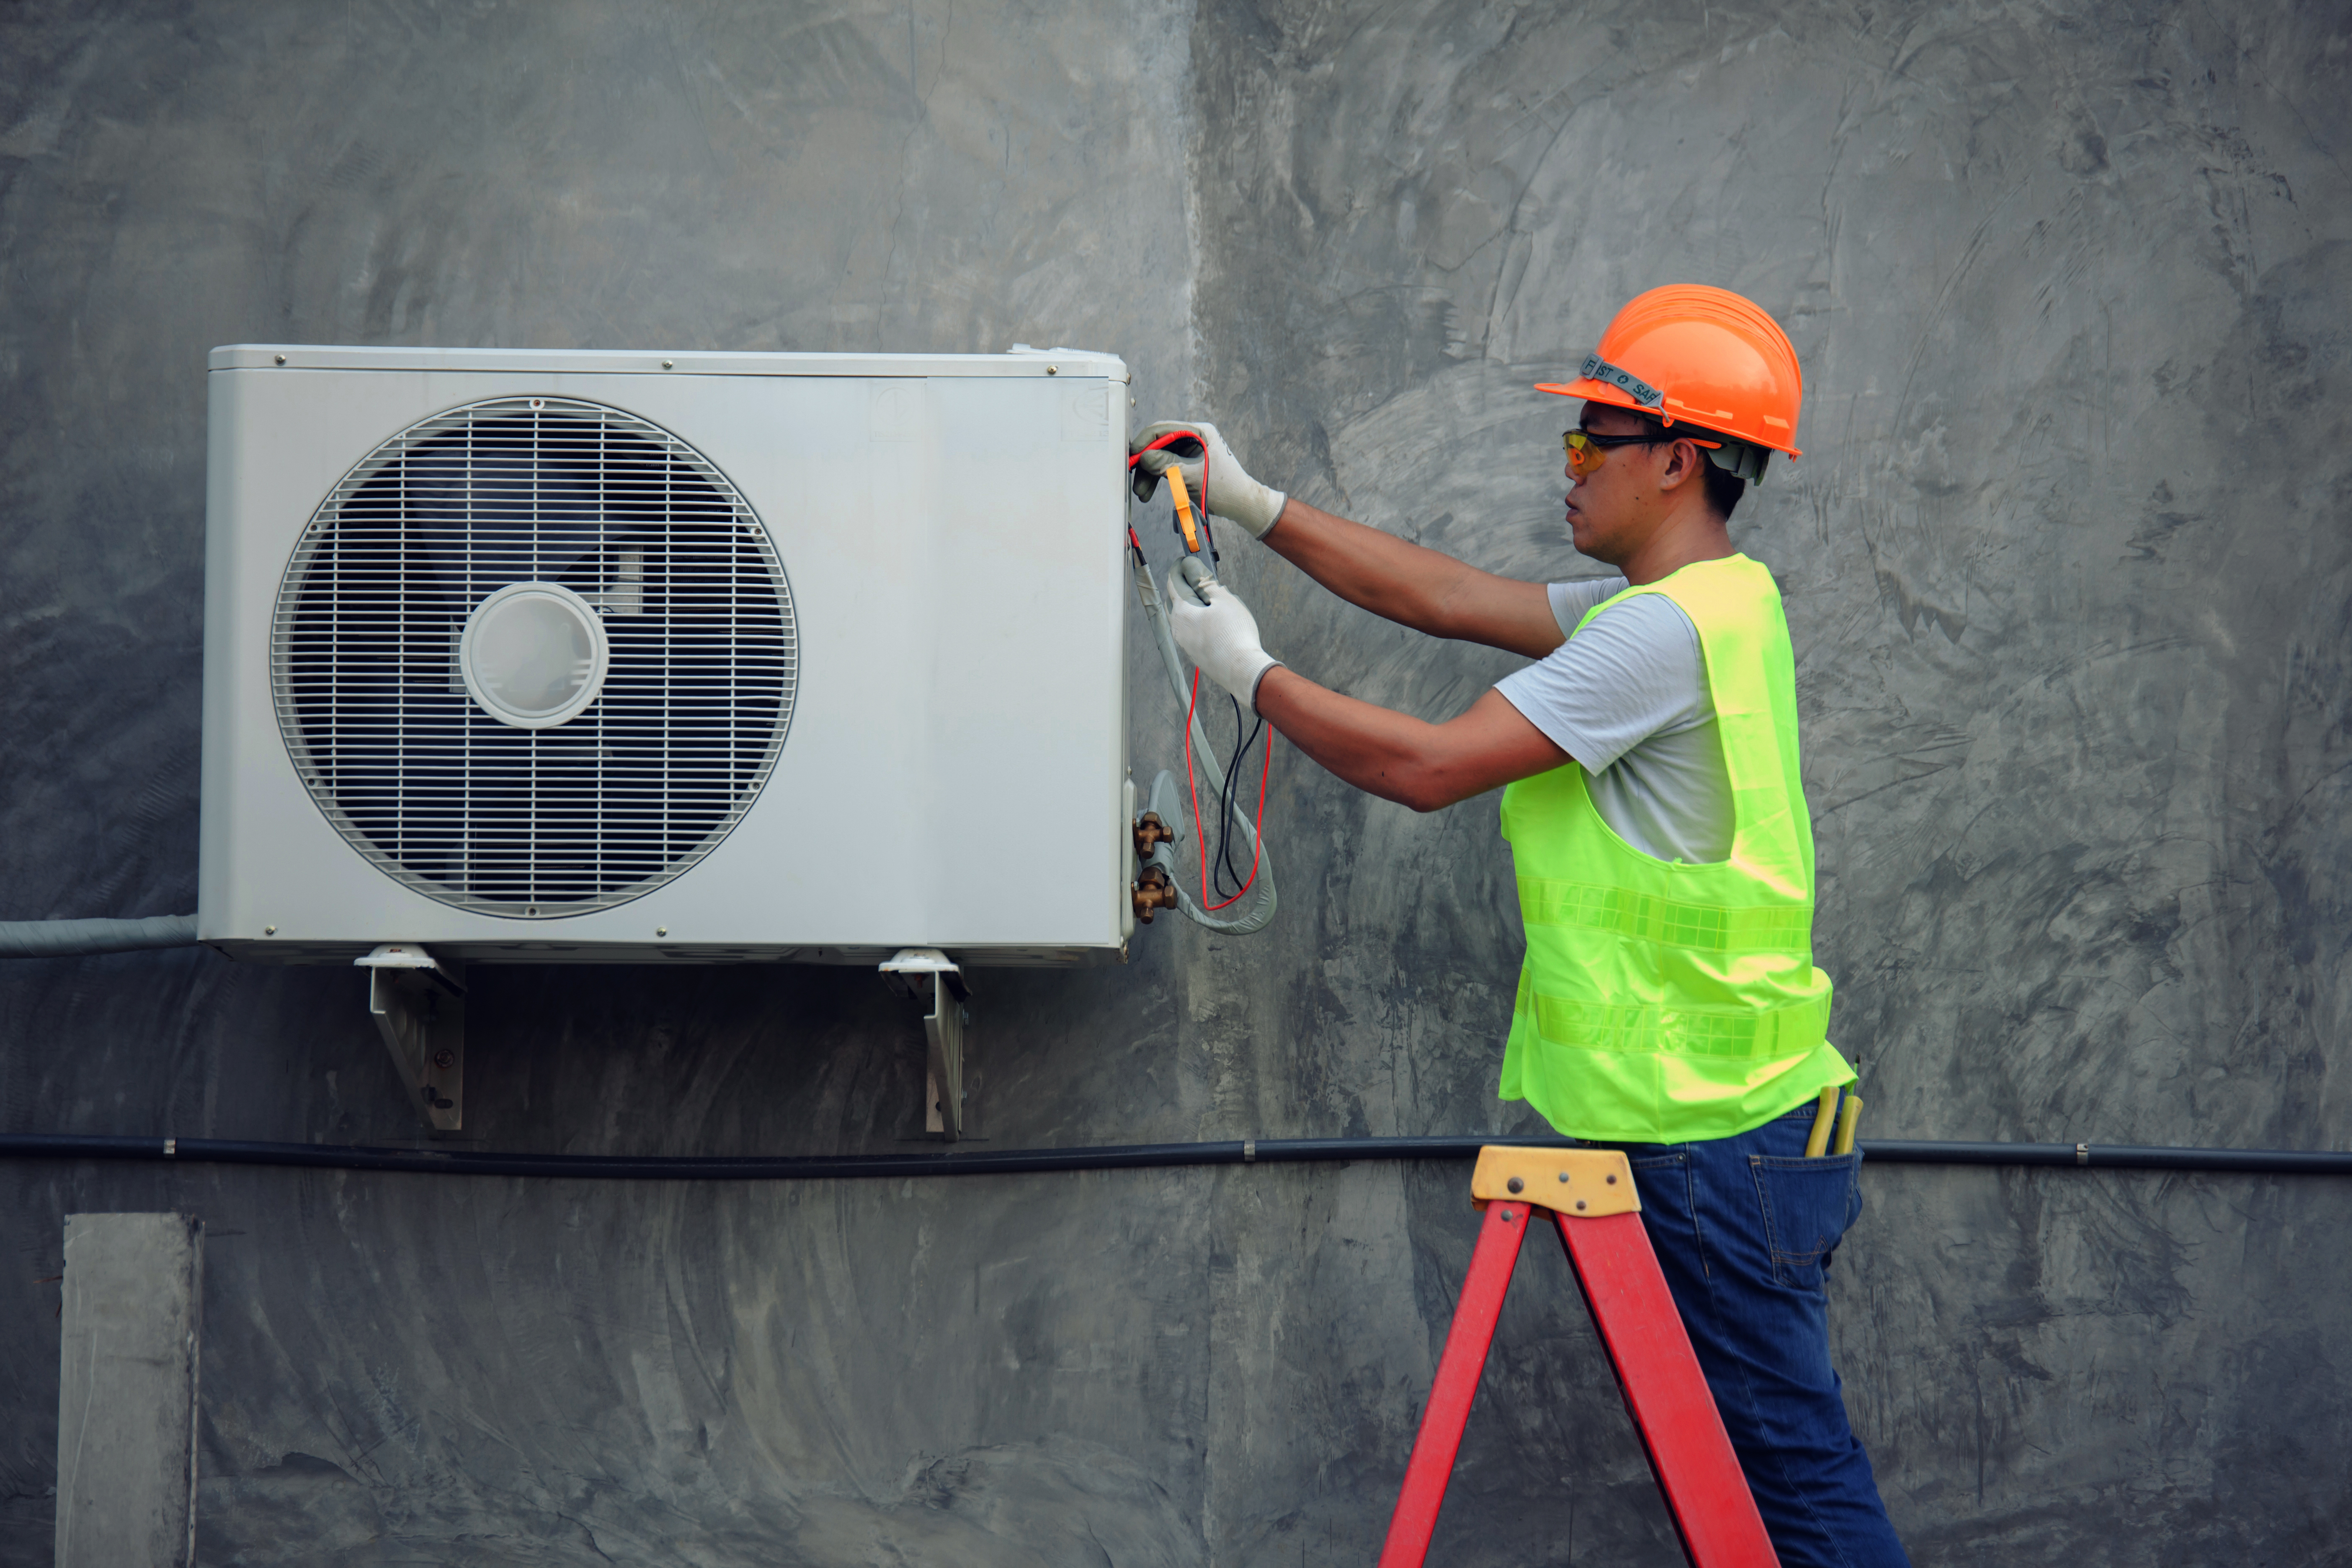 How Long Should a Furnace & Air Conditioning Unit Last